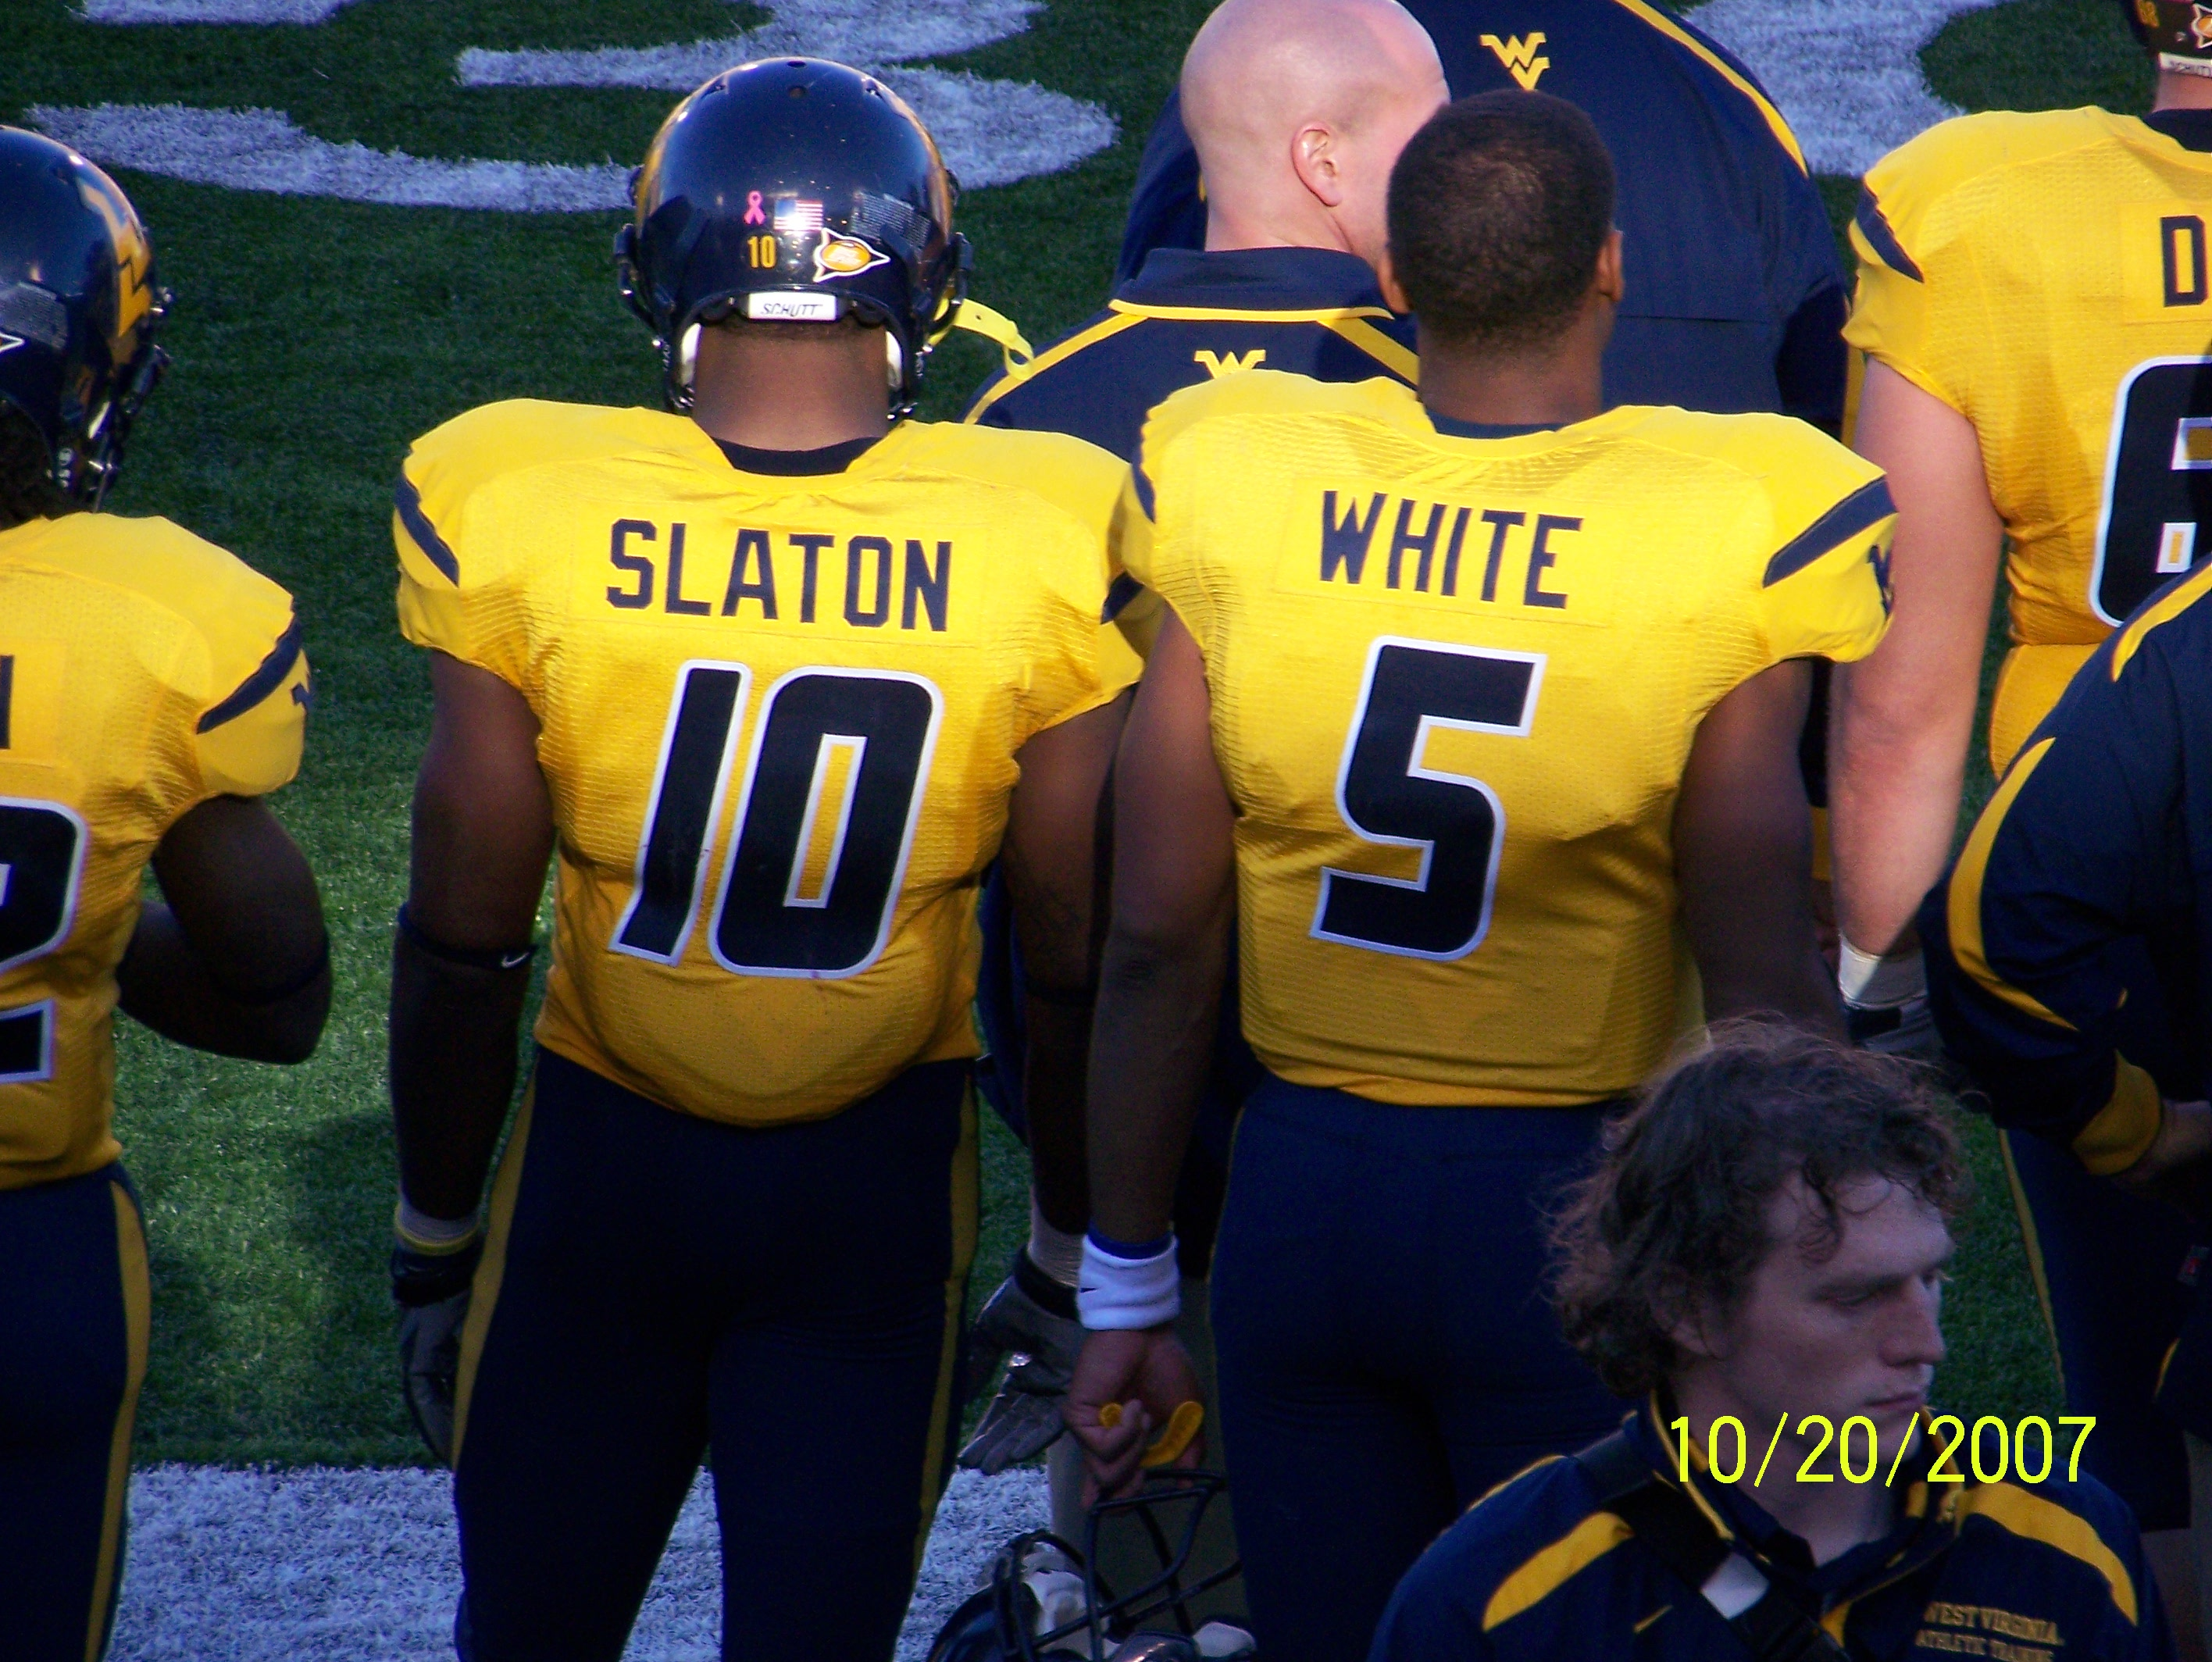 Pat White and Steve Slaton Feel Unwelcome At WVU